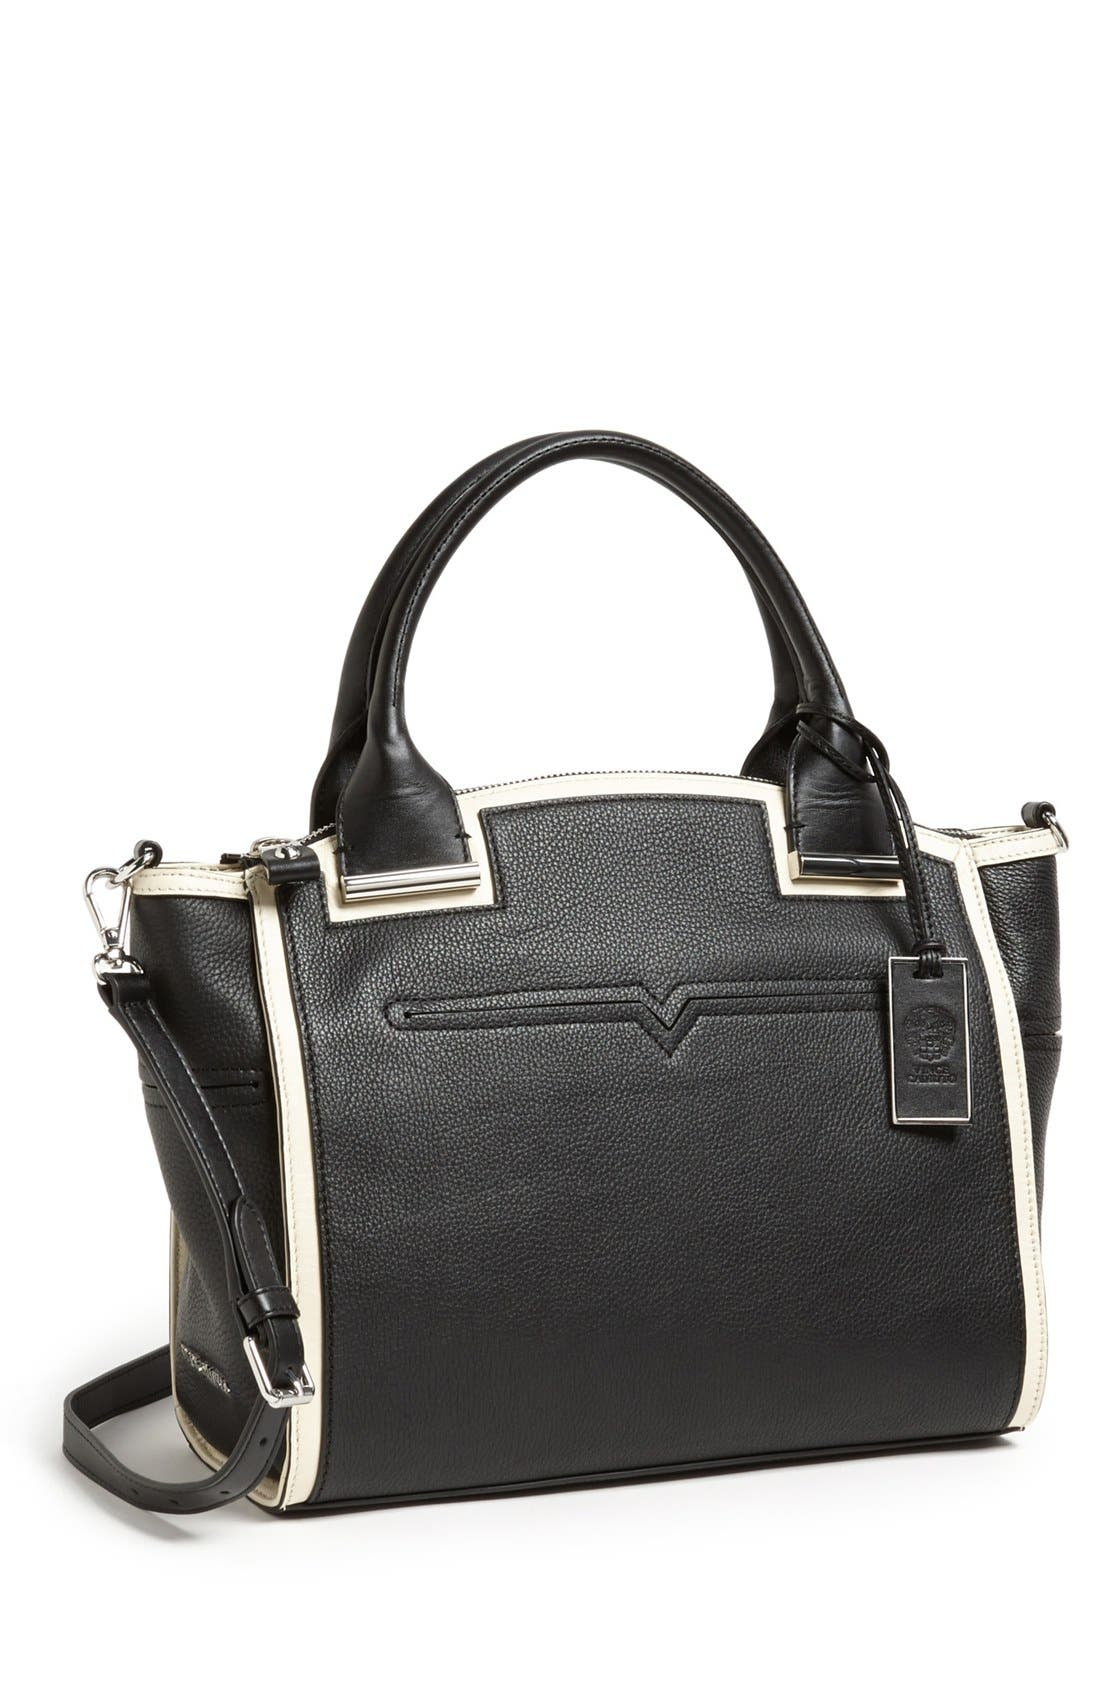 Main Image - Vince Camuto 'Billy' Satchel